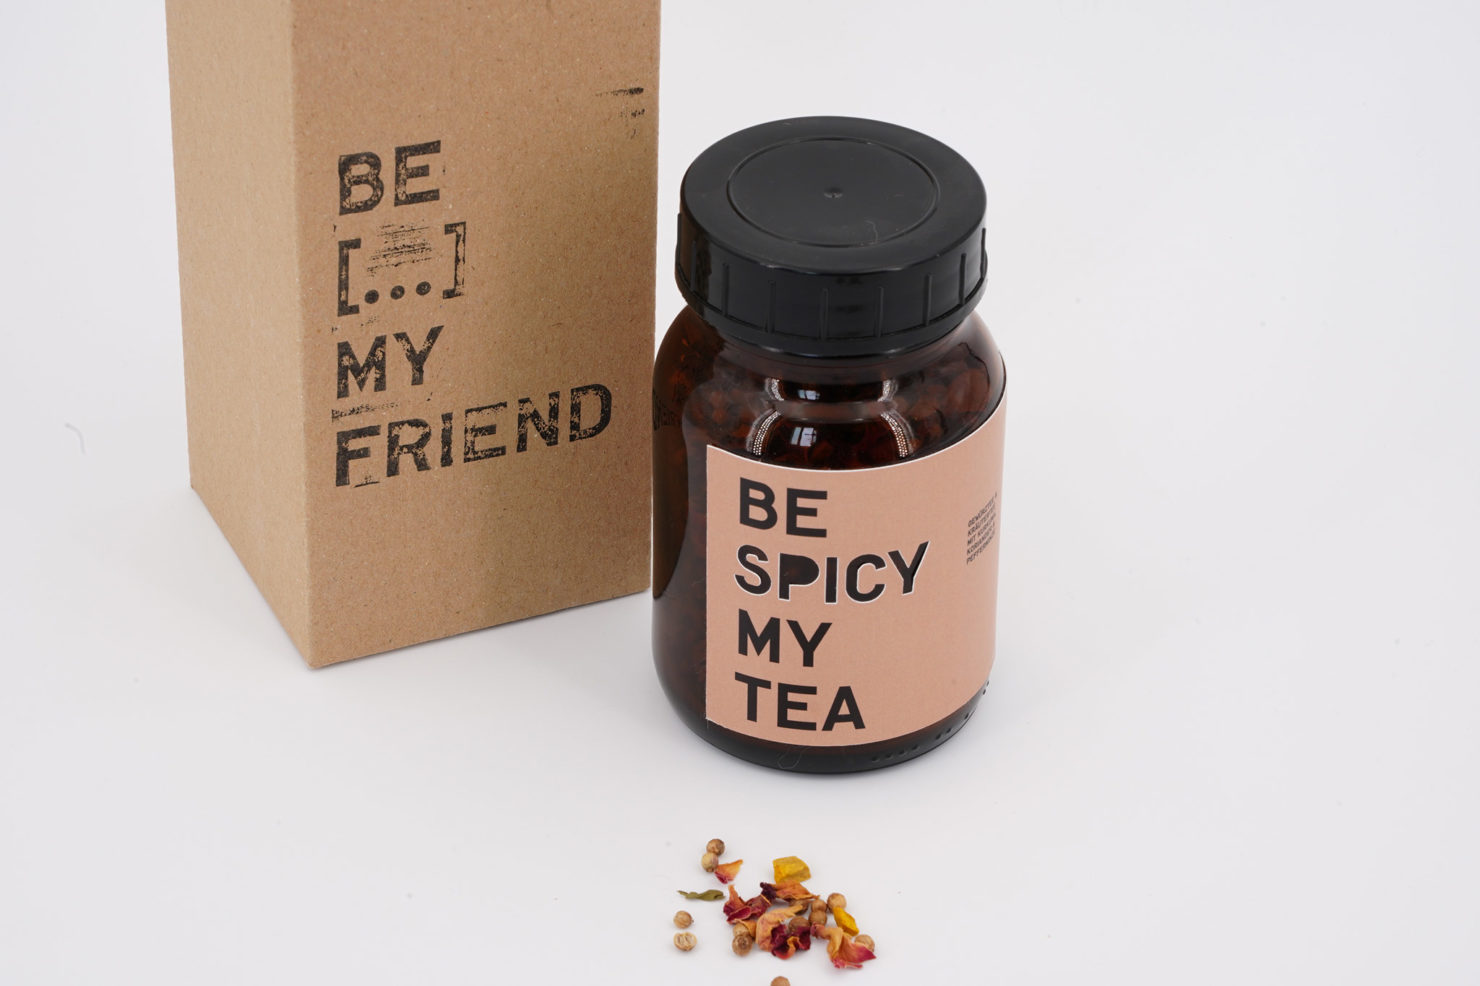 BE SPICY MY TEA 60GR BE MY FRIEND